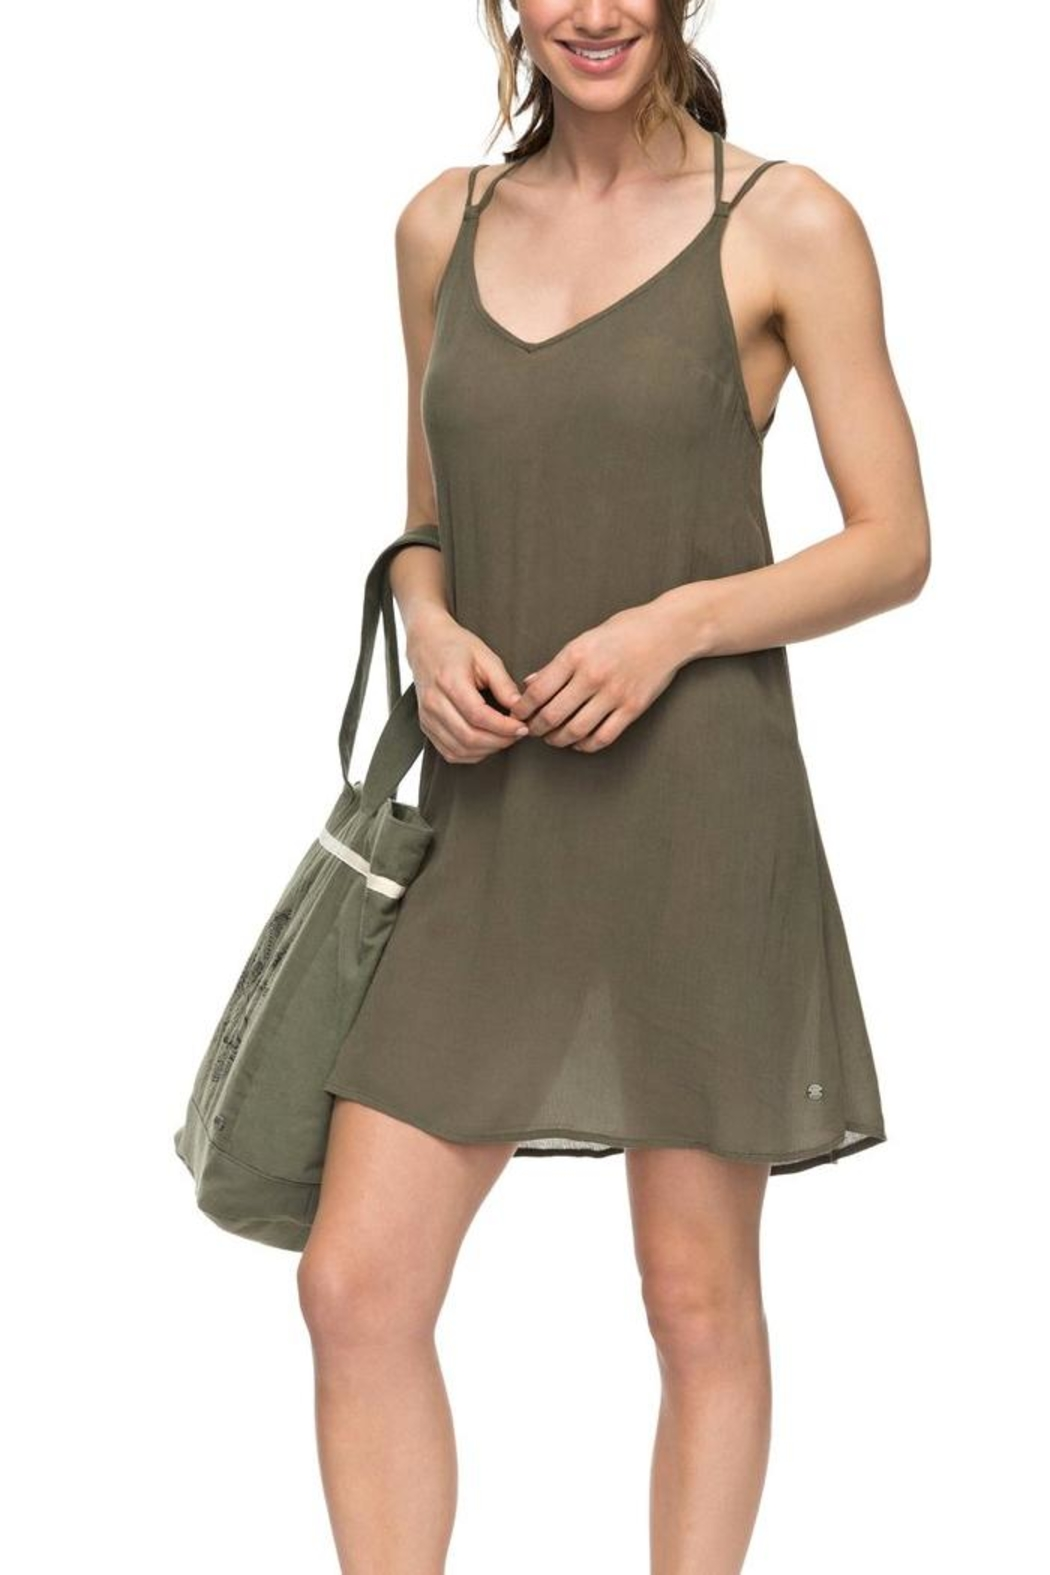 Roxy Green Strappy Dress - Side Cropped Image